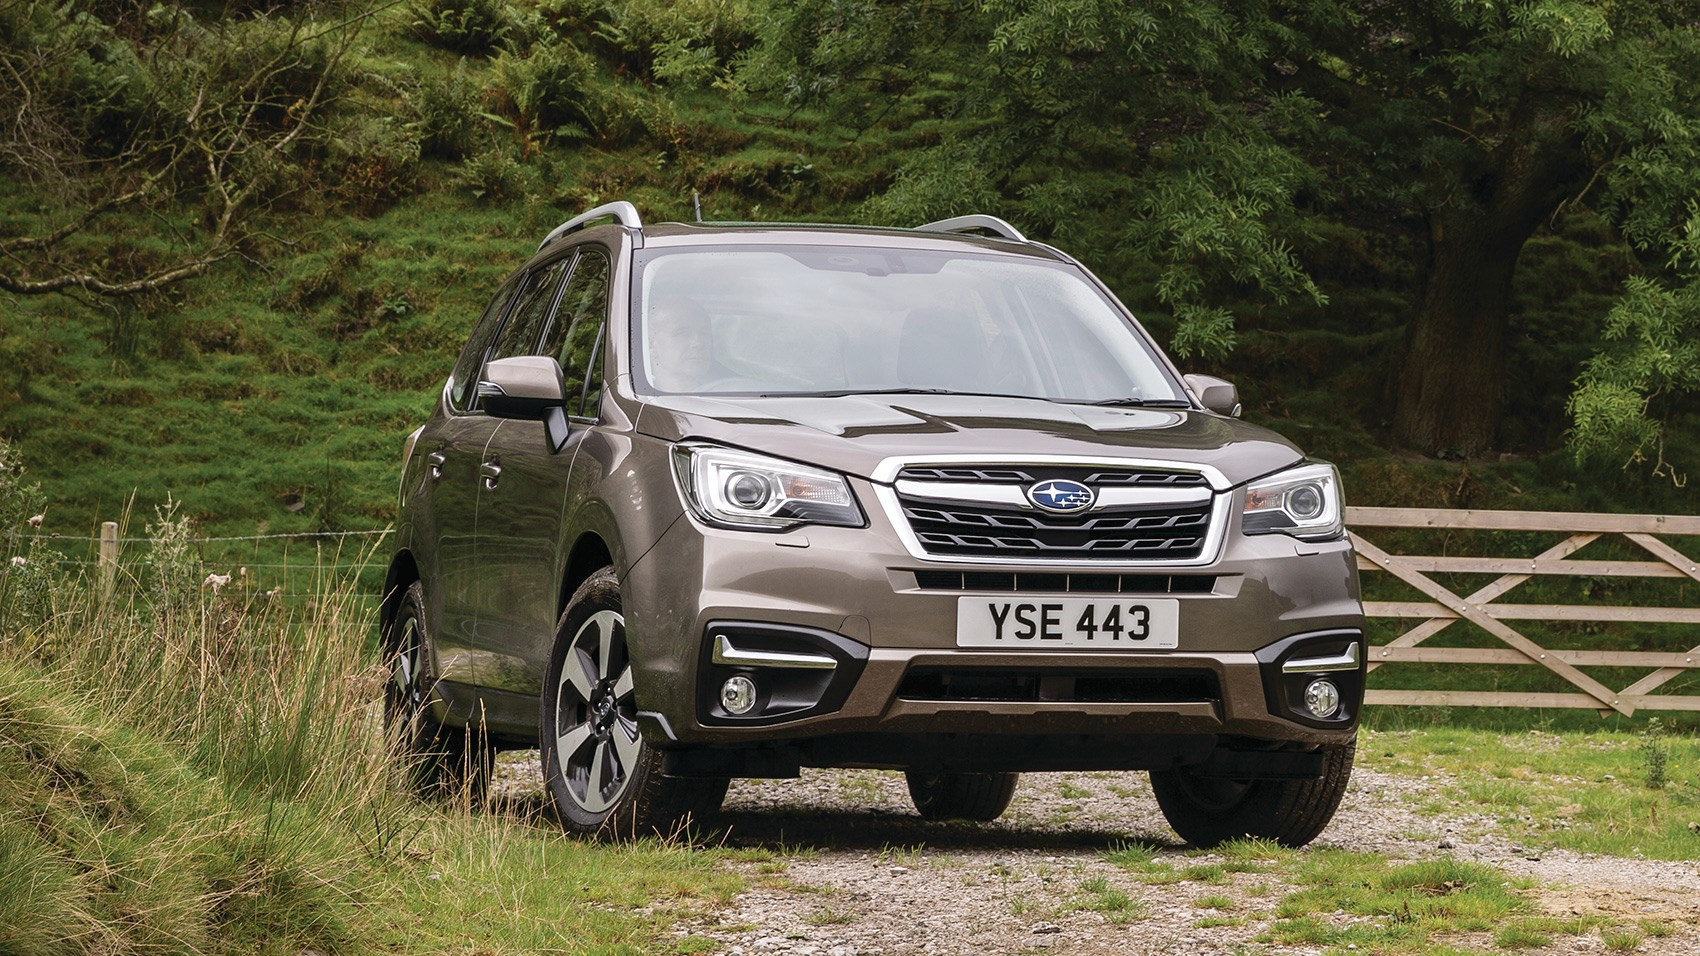 Subaru Forester 2 0i XE Premium Lineartronic (2018) review